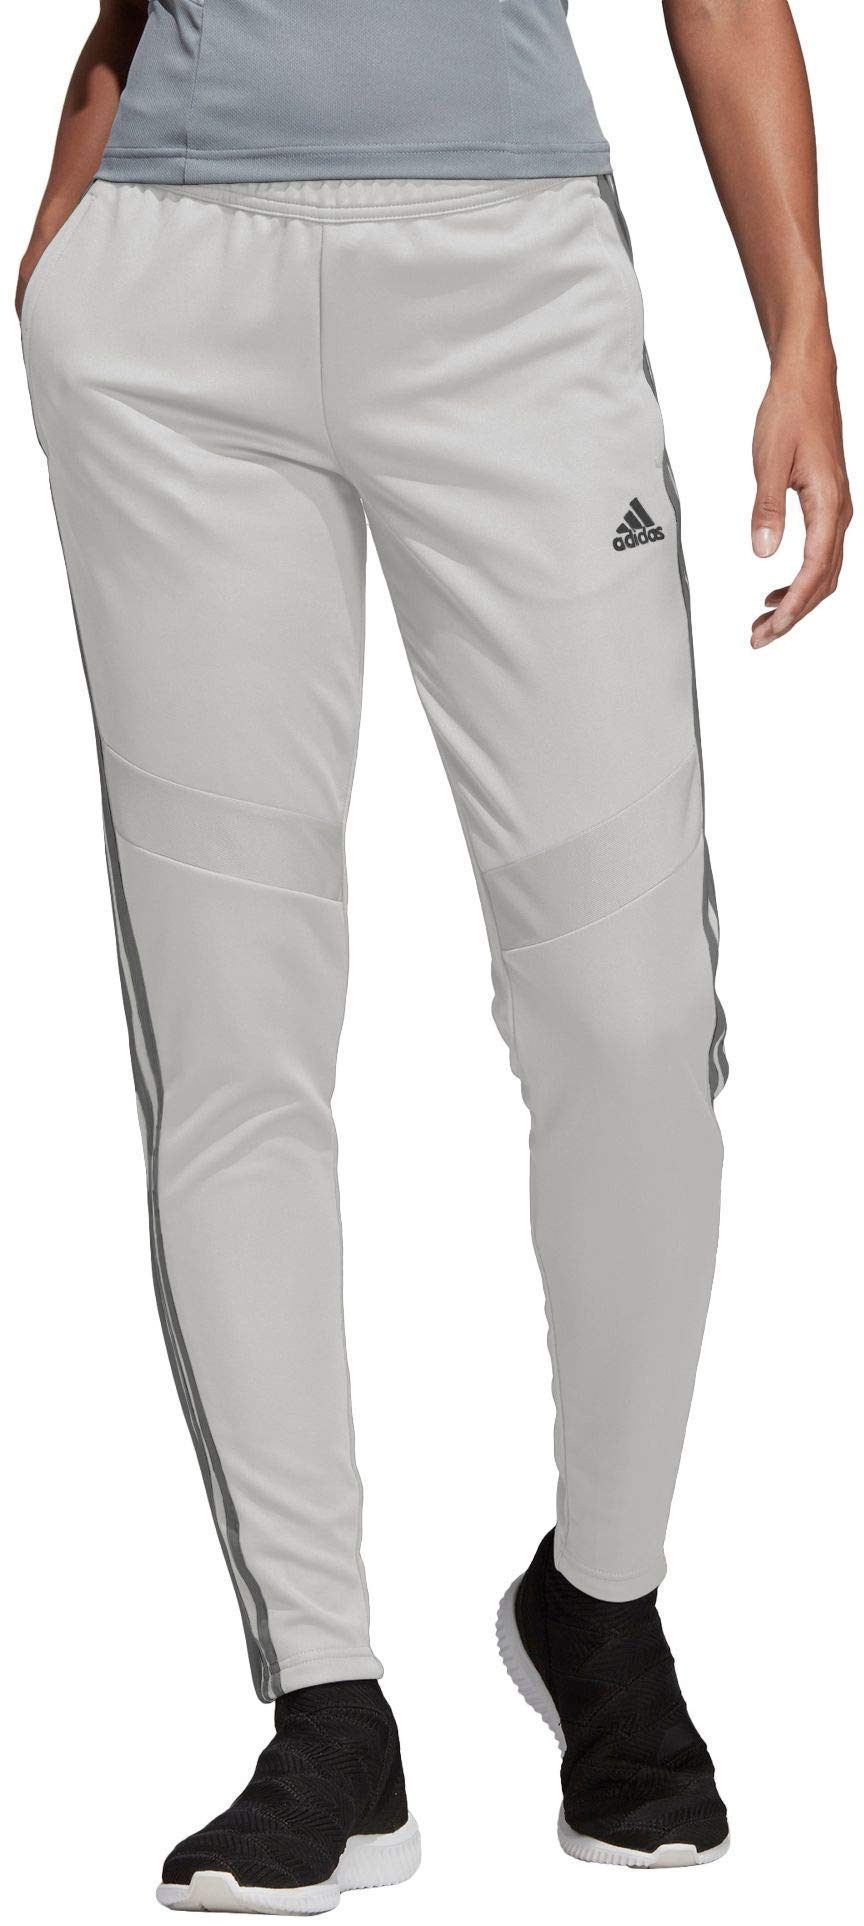 adidas Womens Tiro 19 Training Pants - Raw White/Grey, Small by adidas